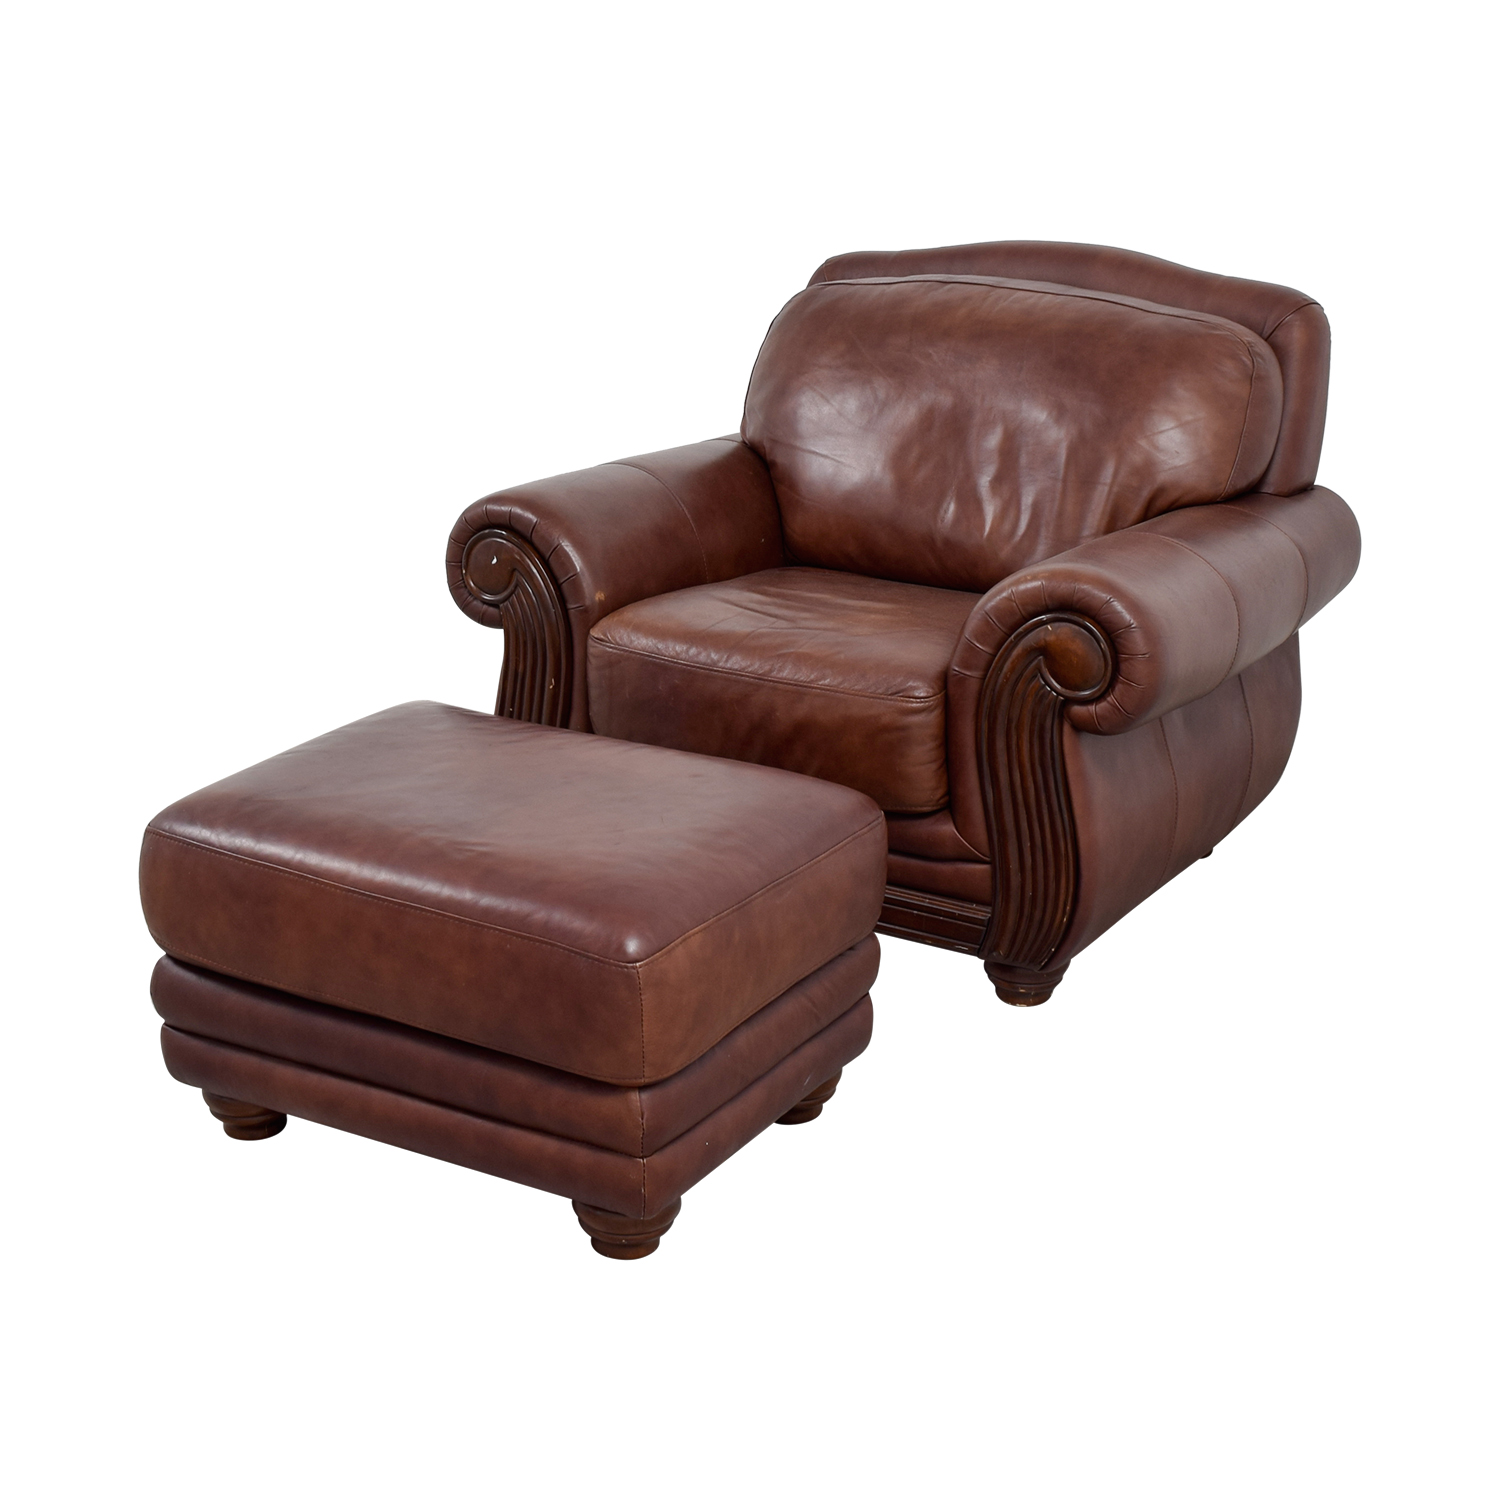 Leather Chairs And Ottomans Sale 54 Off Rooms To Go Rooms To Go Brown Leather Chair And Ottoman Chairs